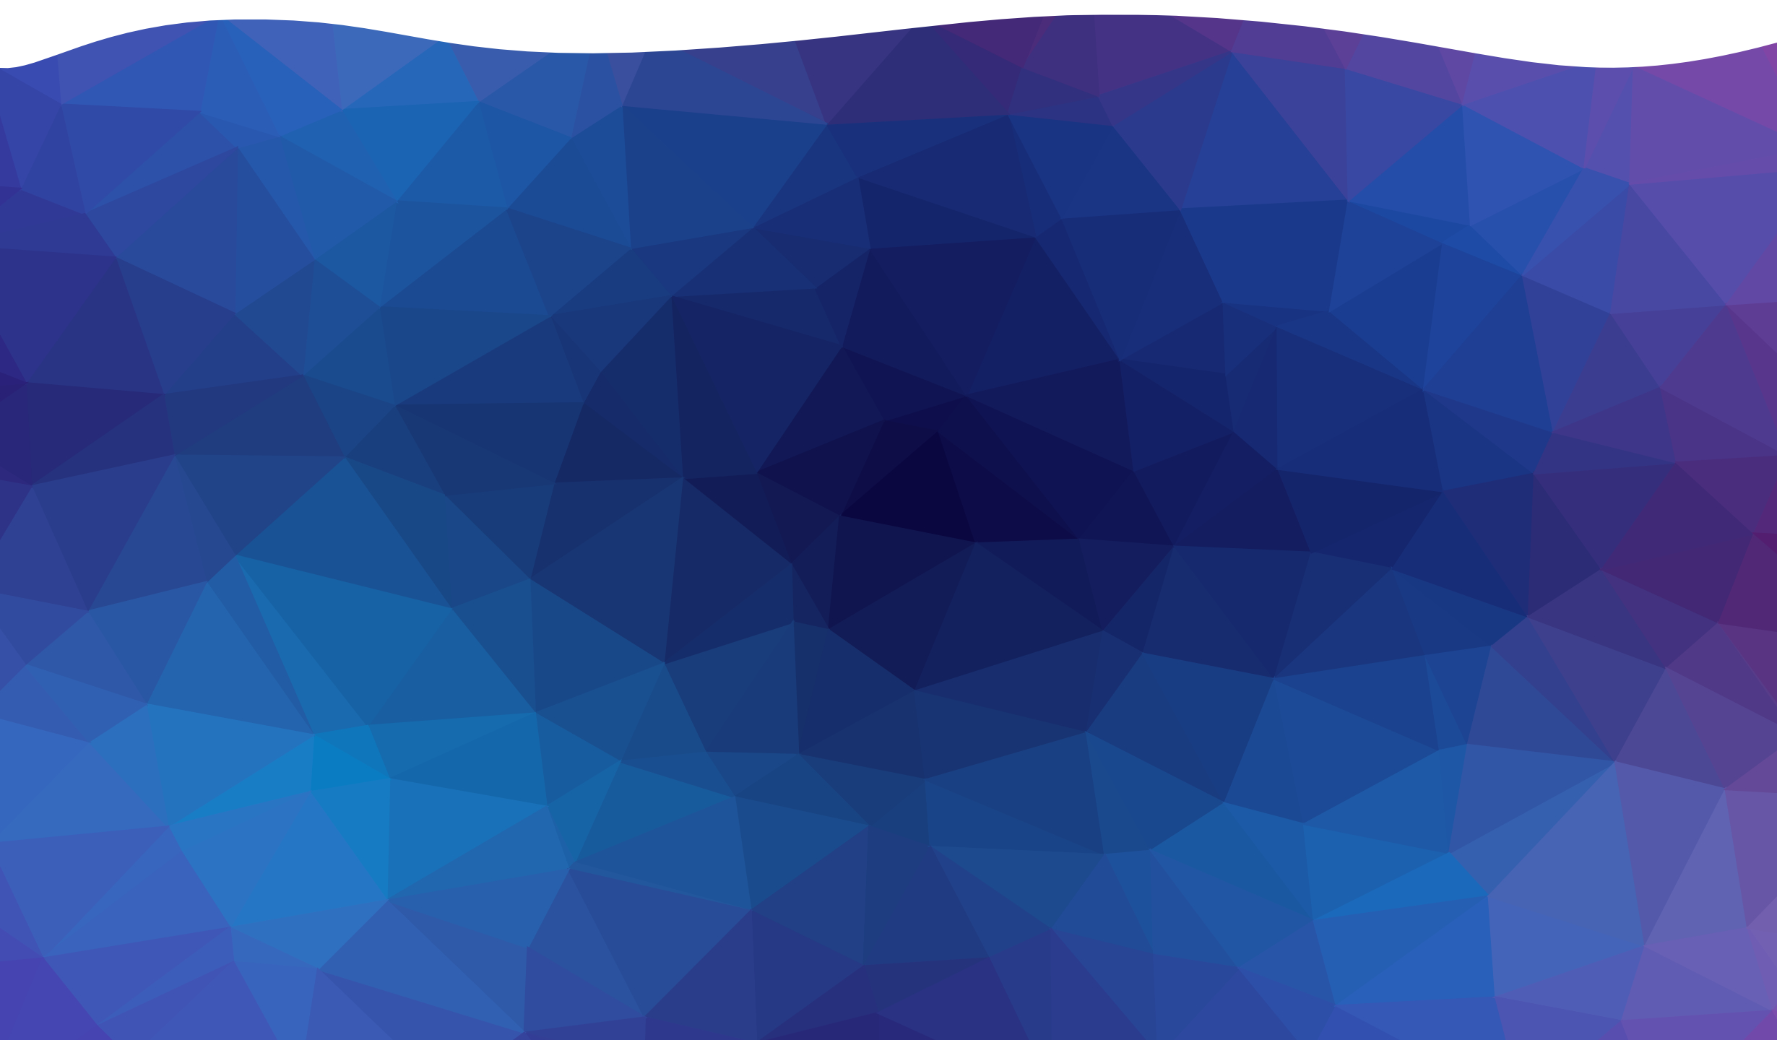 Partial polygon background